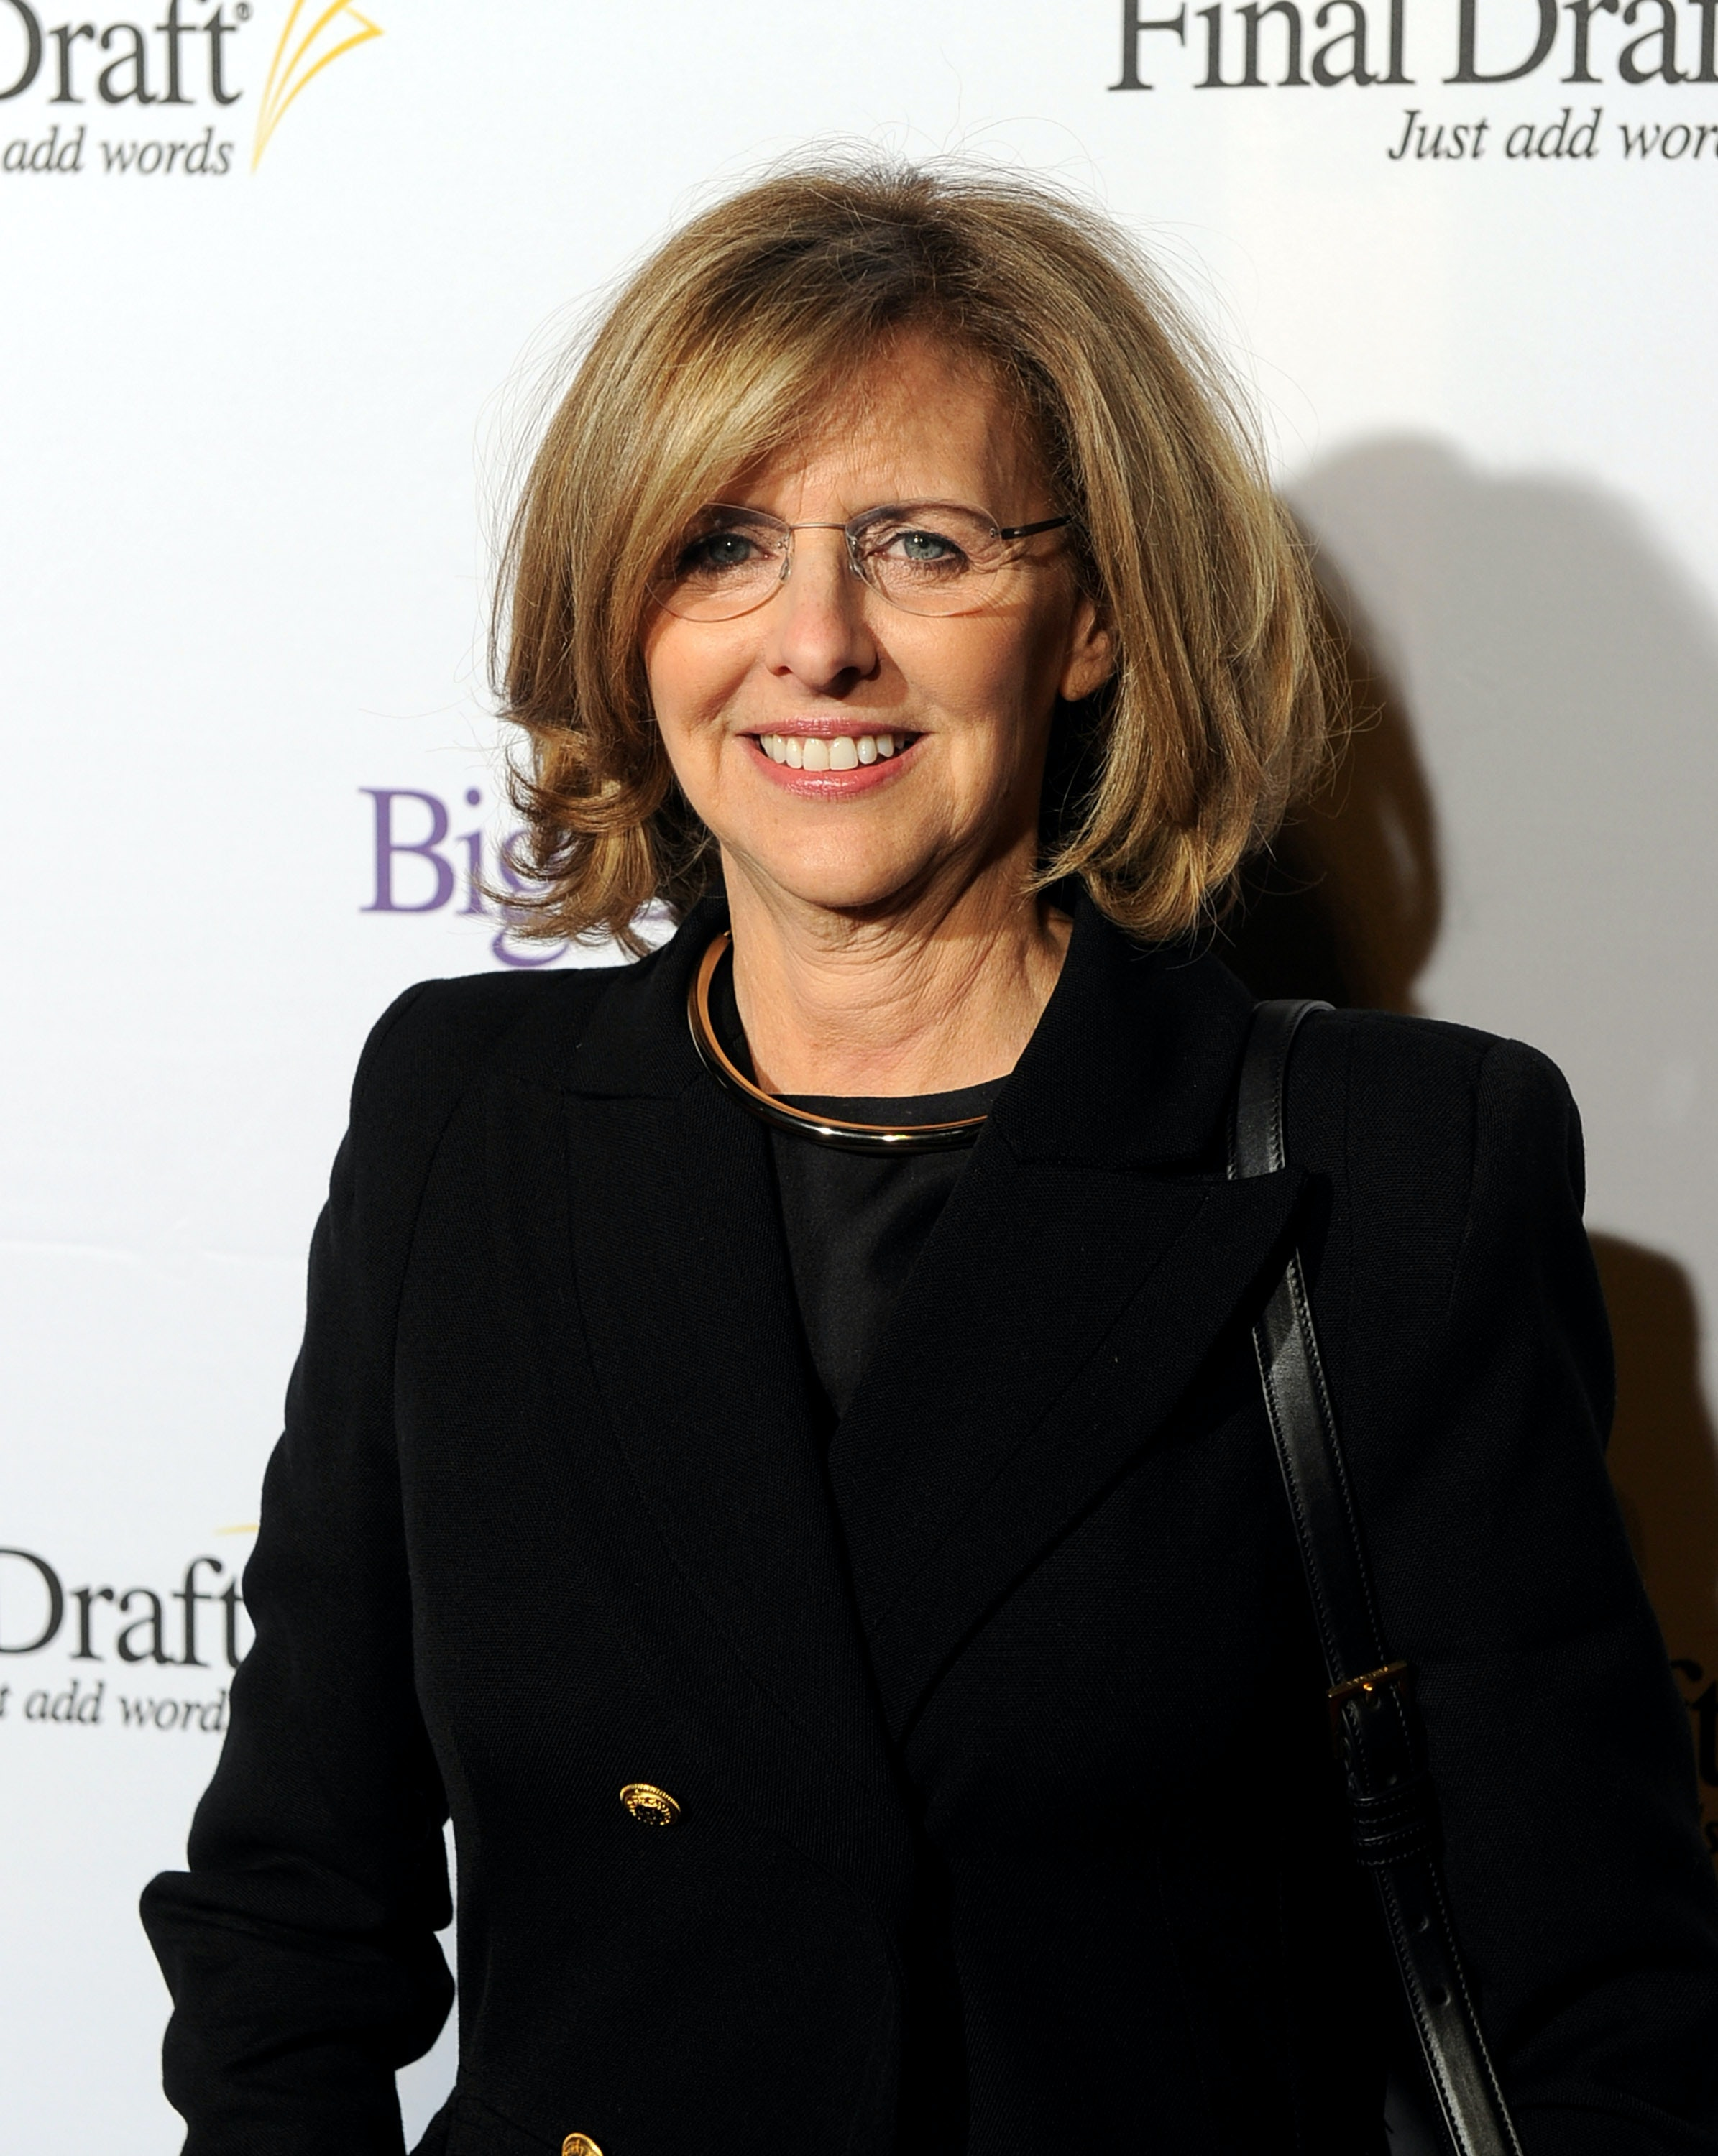 Nancy Meyers Nancy Meyers Photos From The Intern Set Will Make You Want To